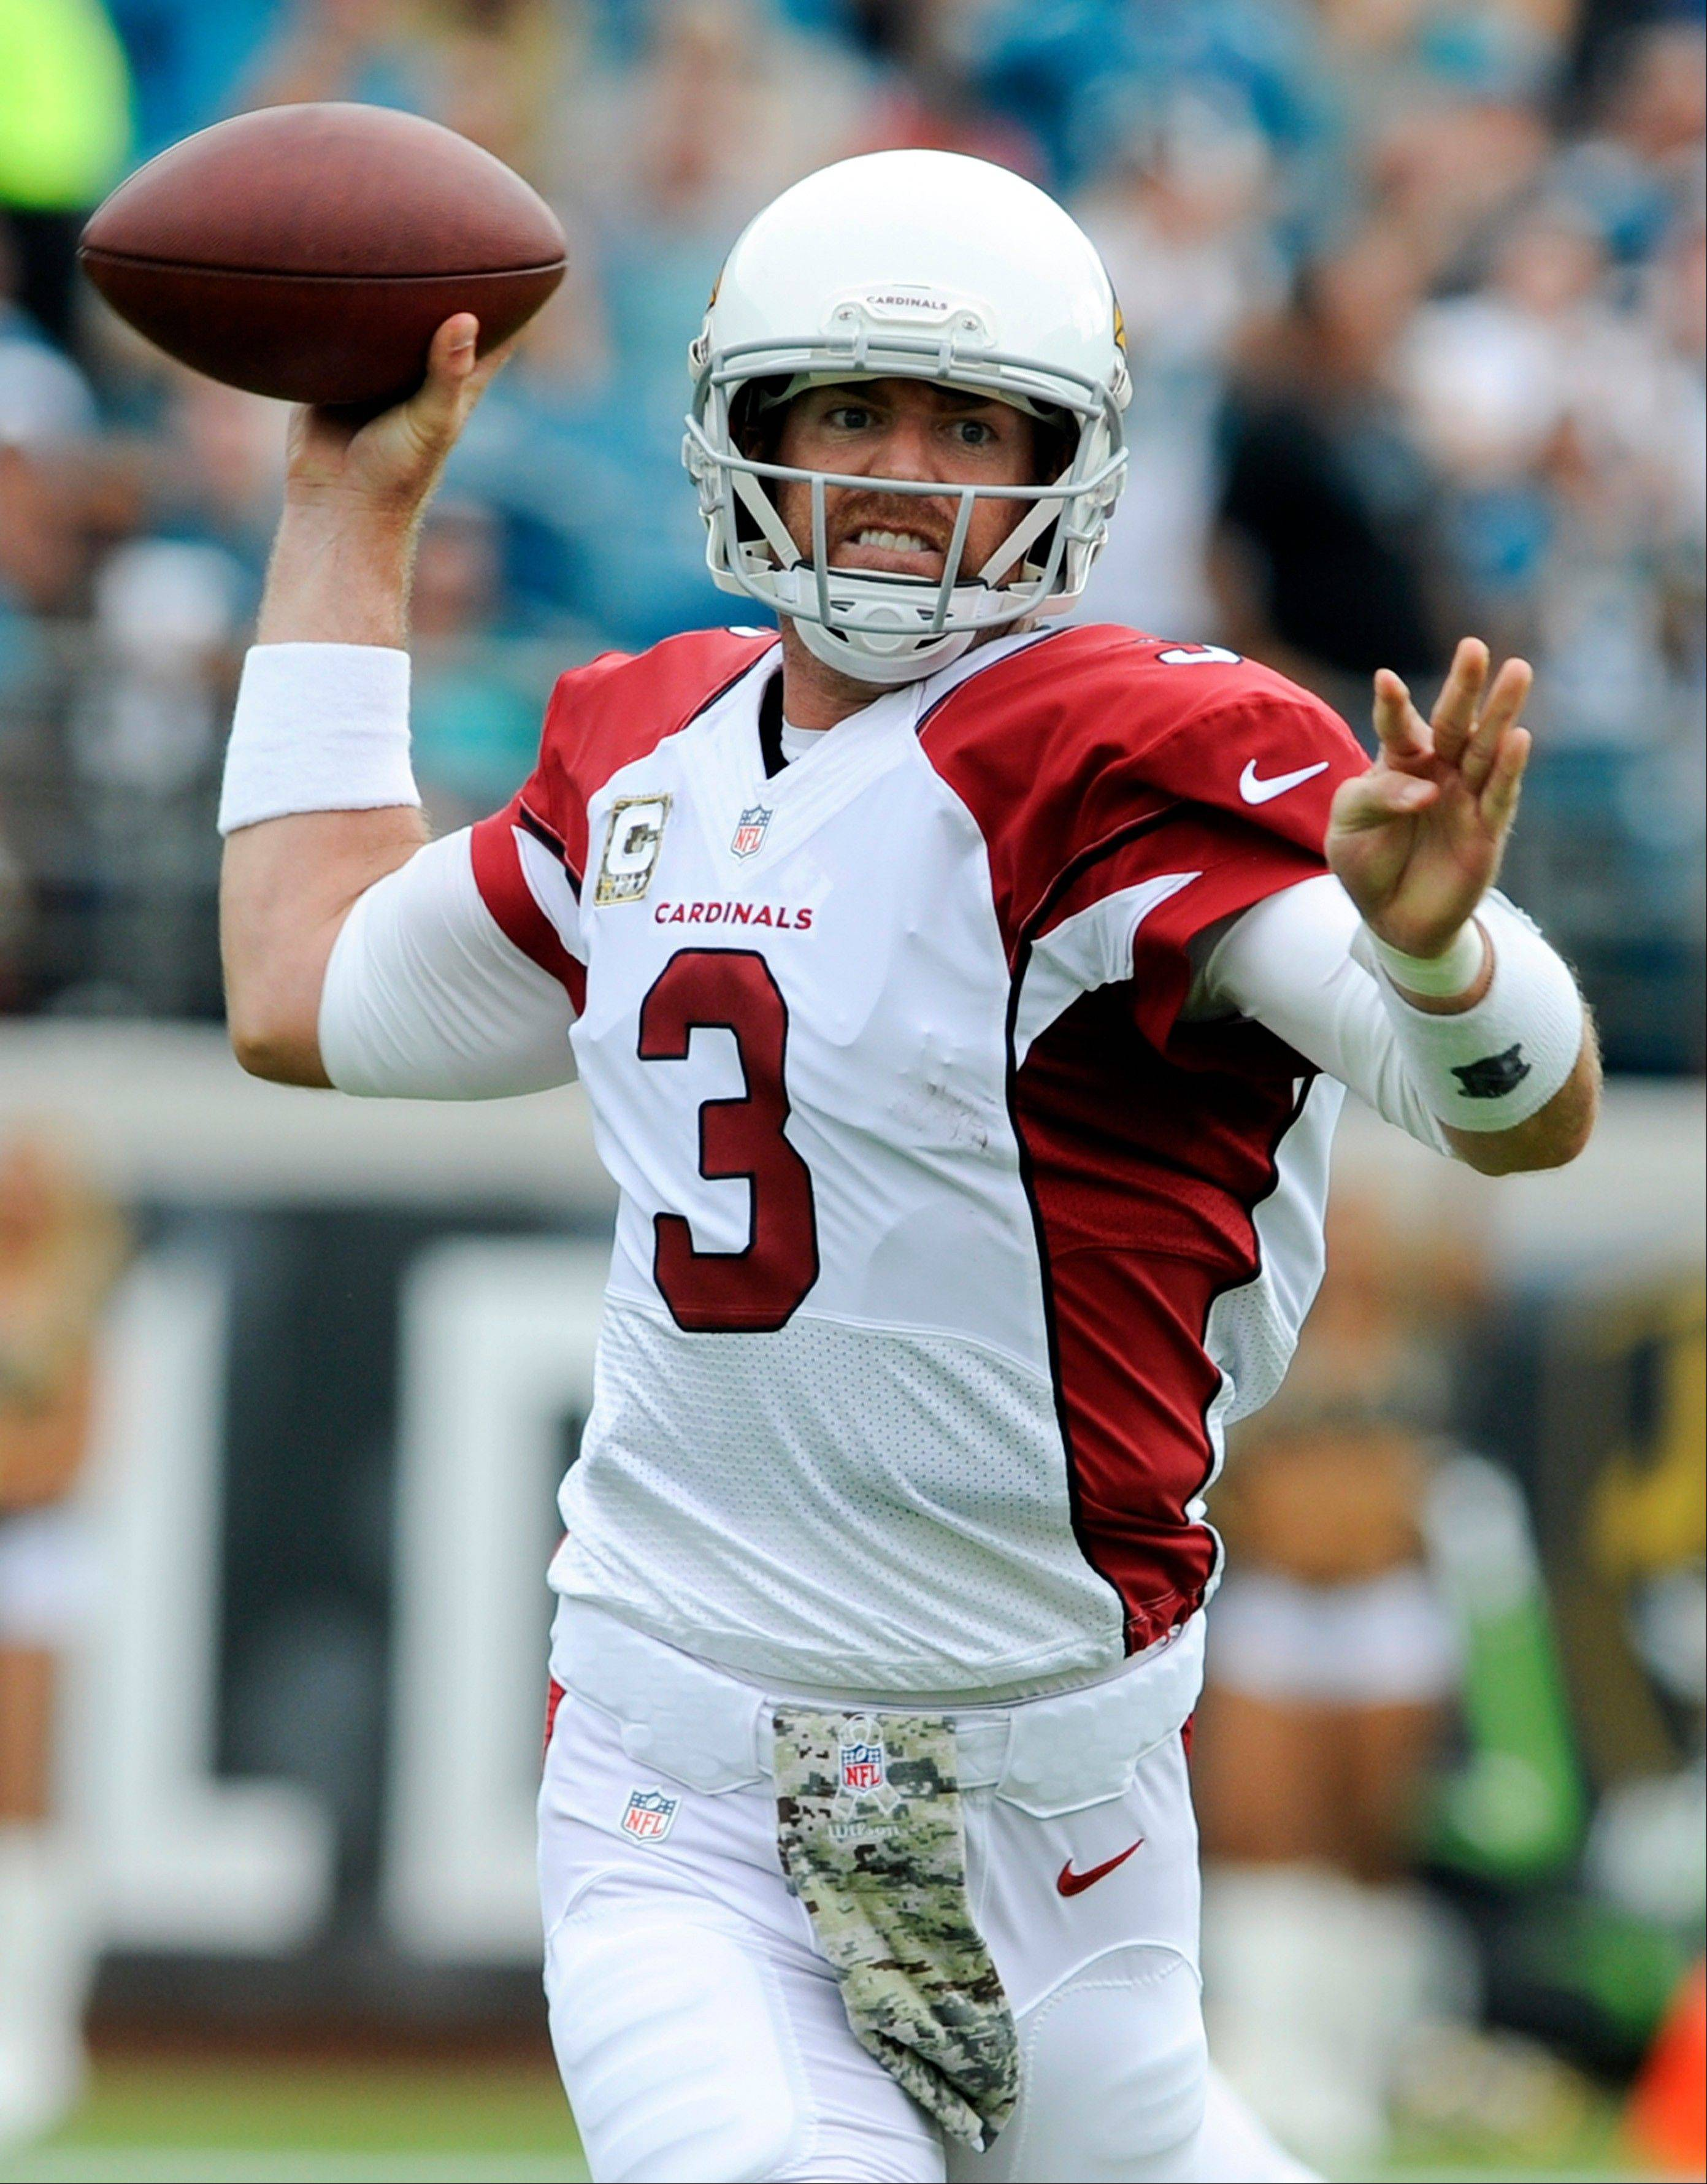 Carson Palmer hasn't been a fantasy starter for most teams this season, but his big day last week may lead some owners to take a chance on him in Week 12.